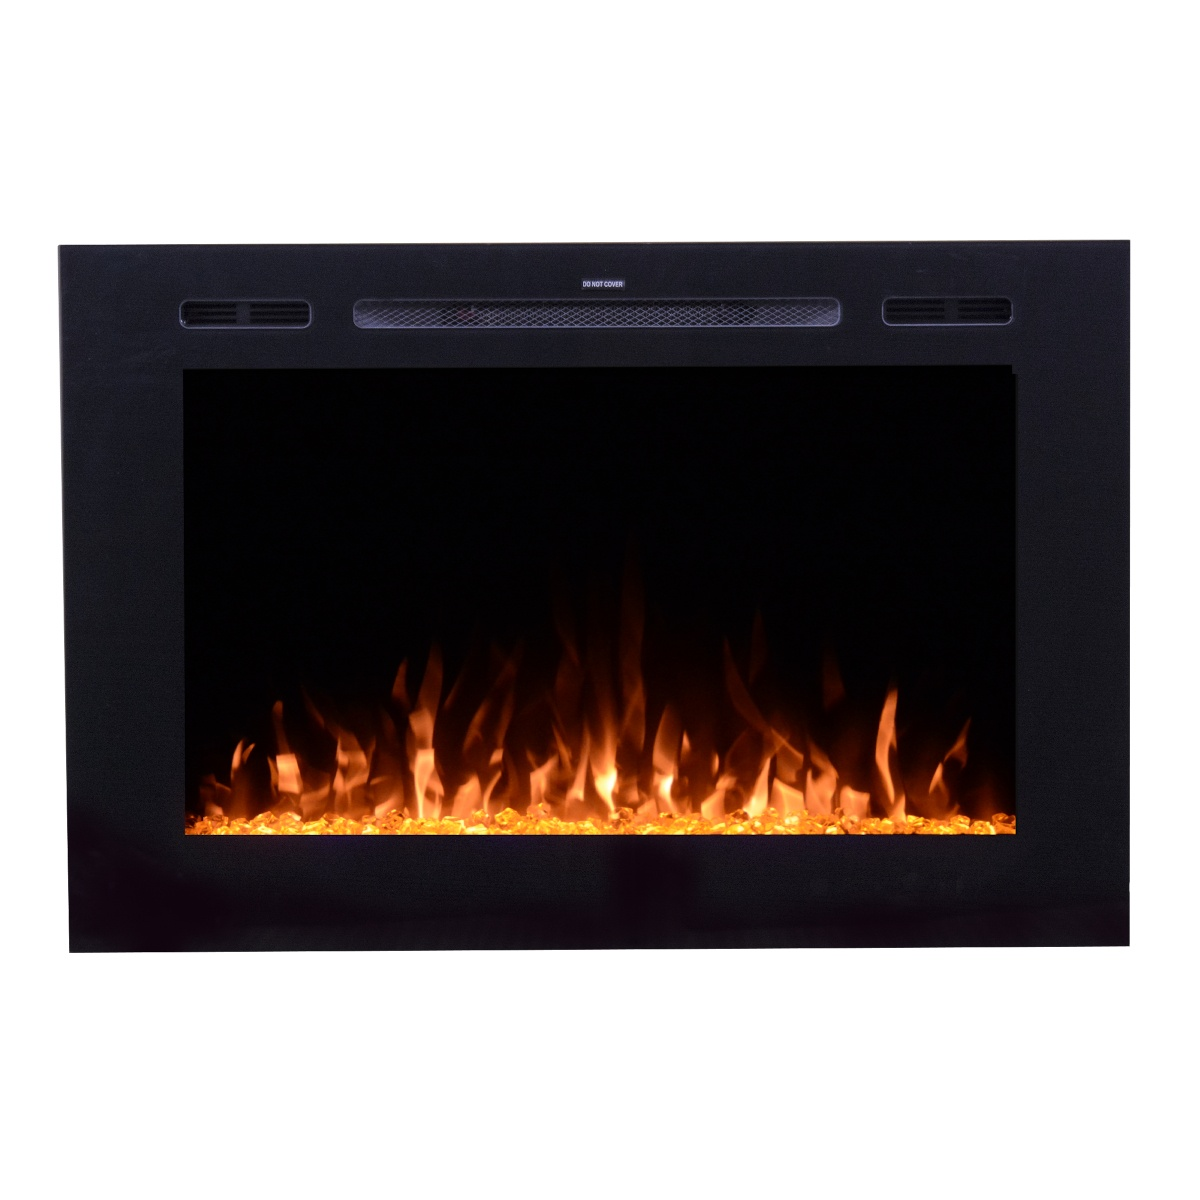 touchstone 80006 forte extra tall modern electric fireplace with glass front